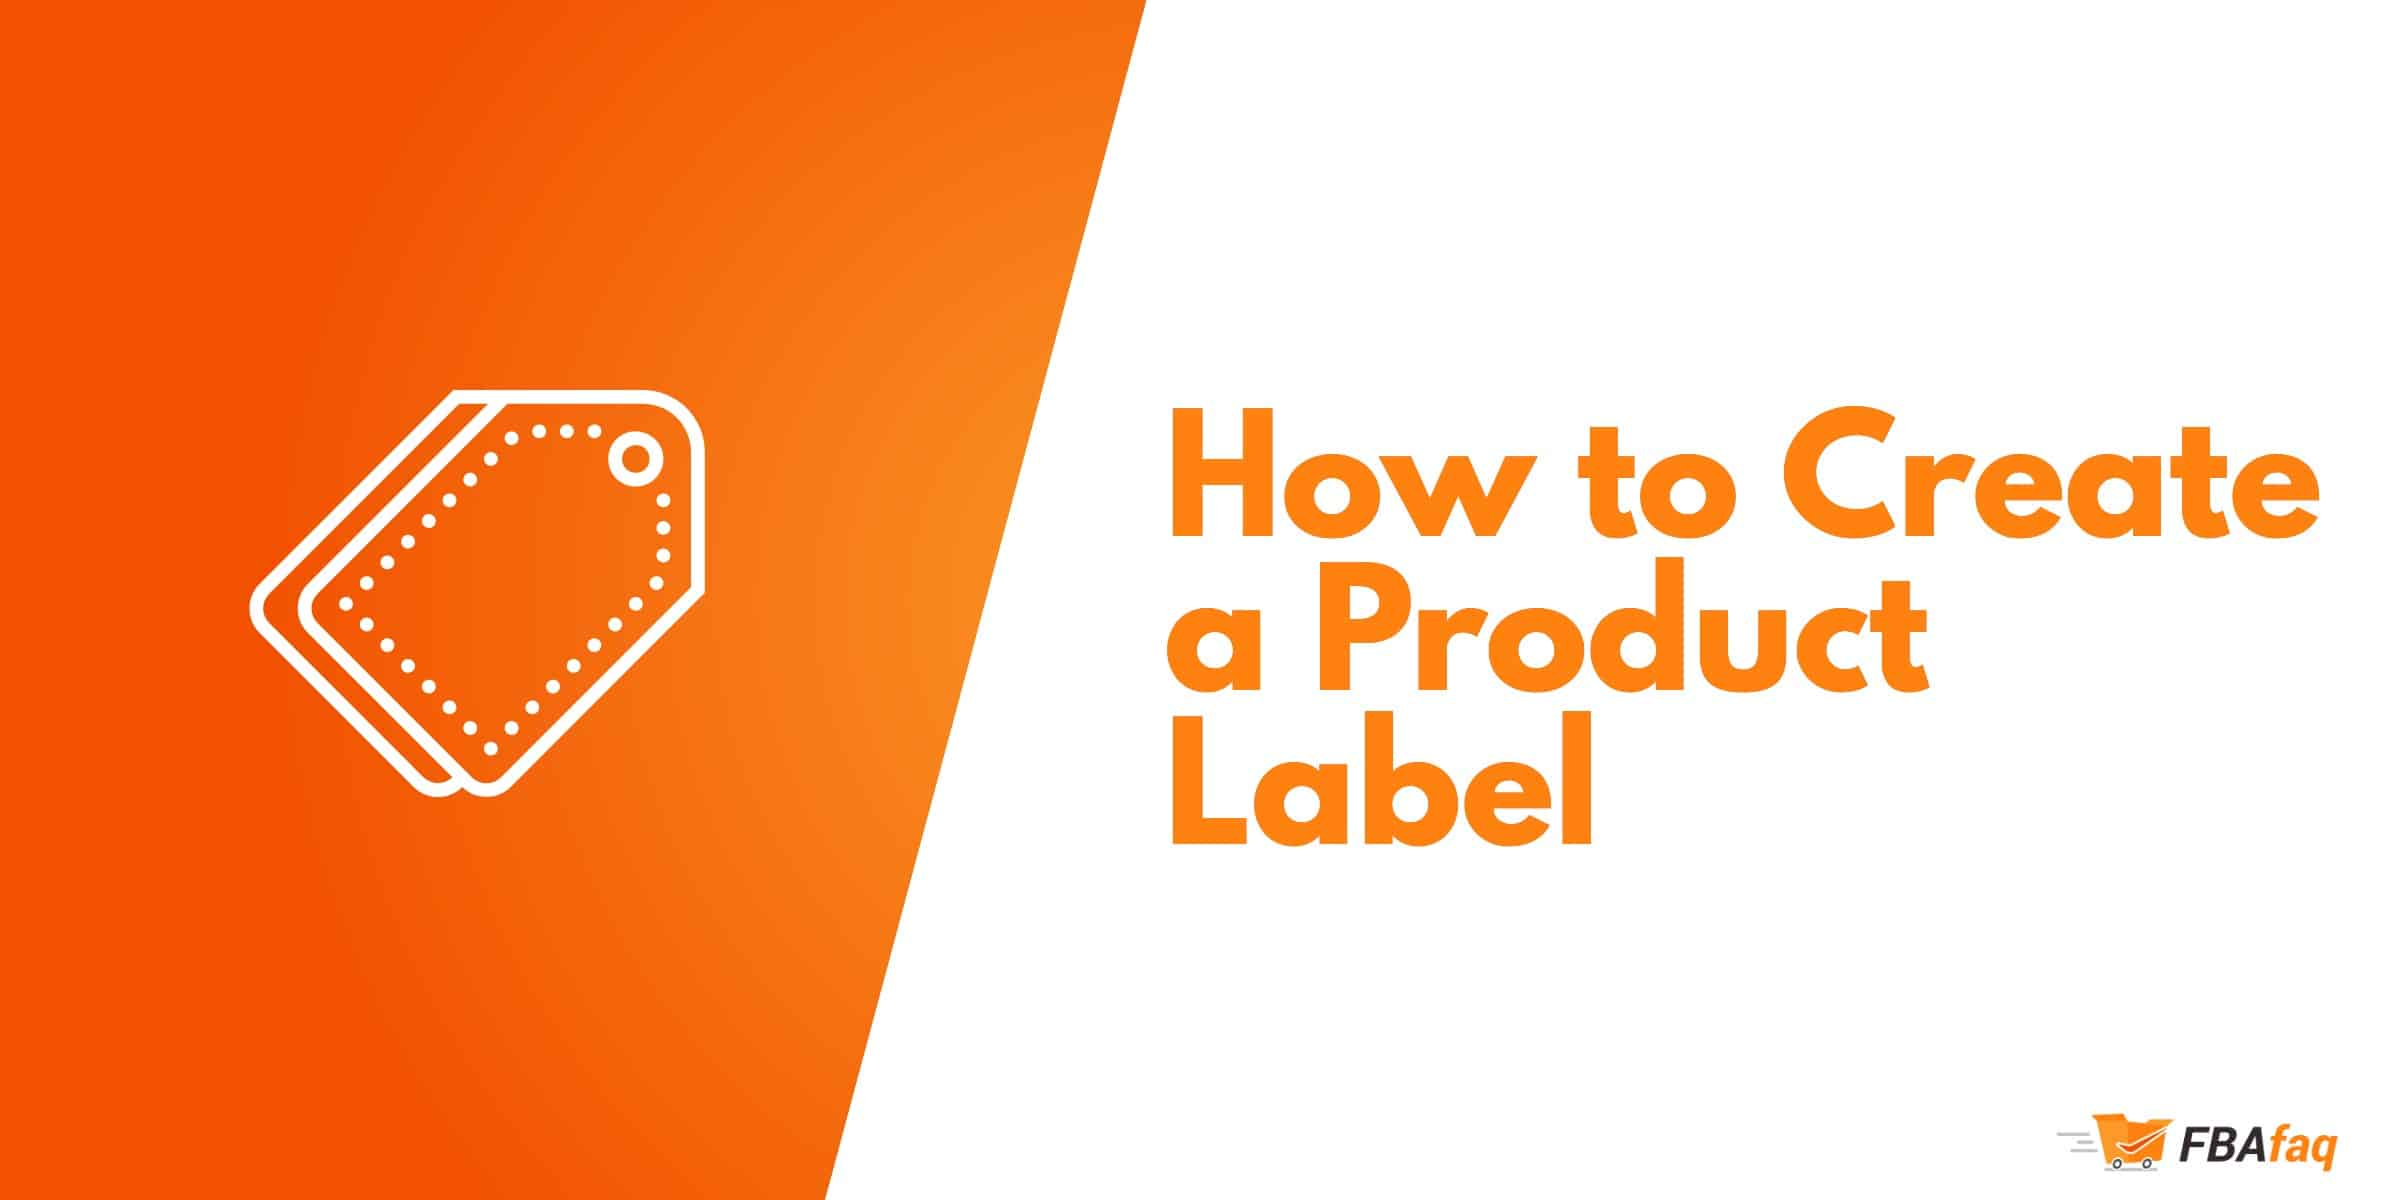 Create a product label